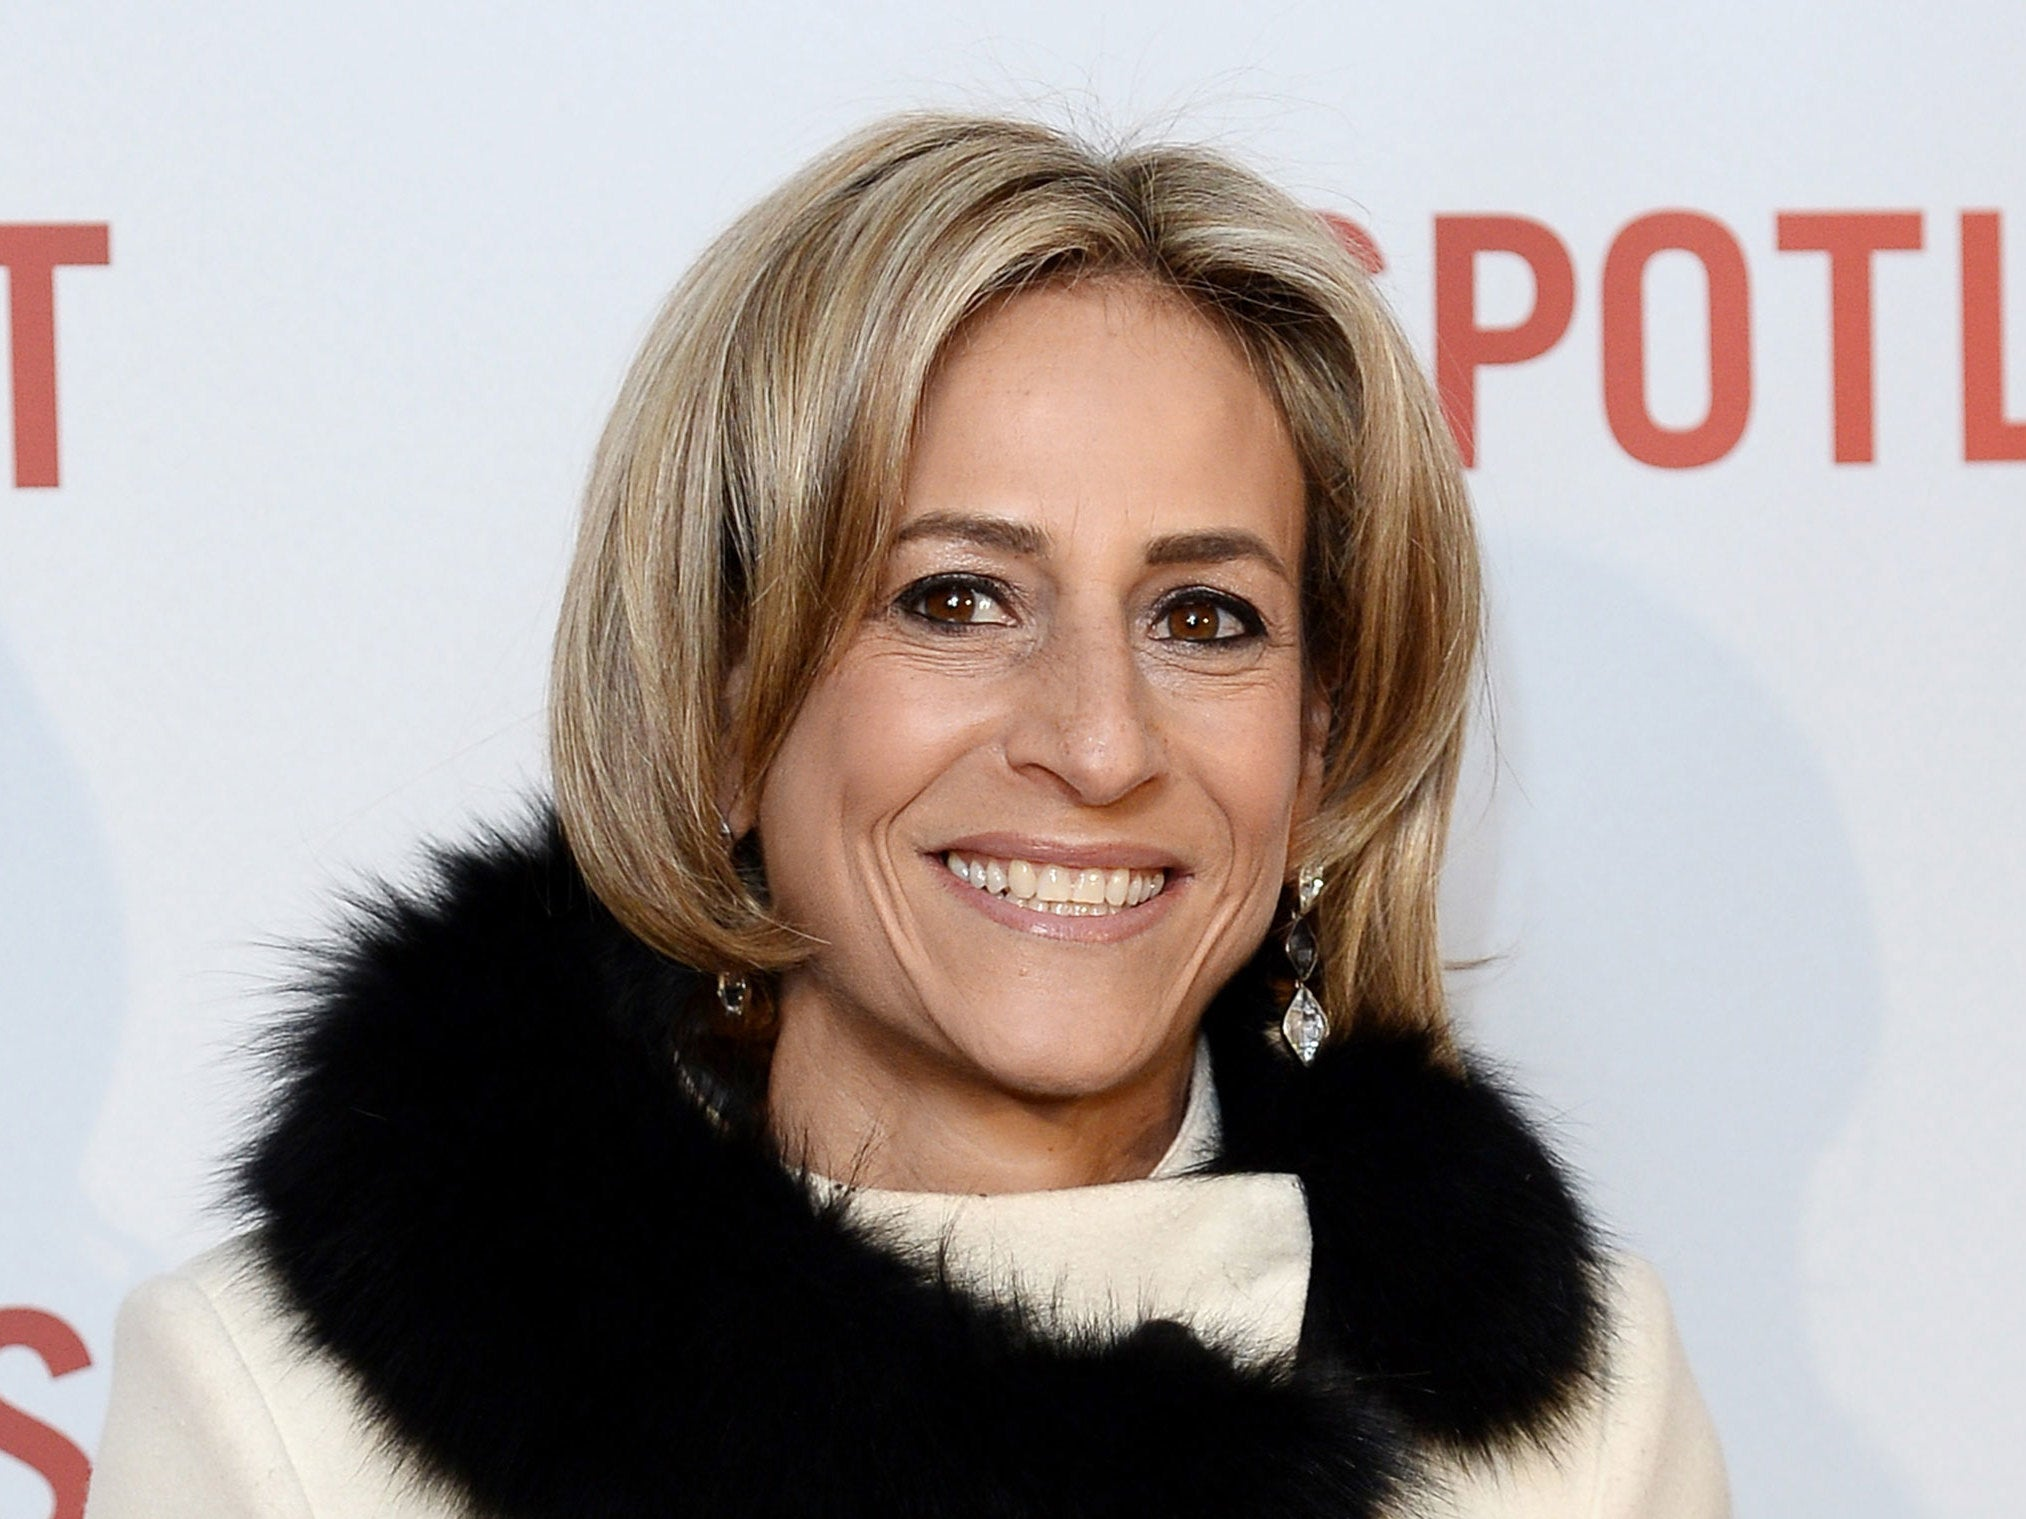 Man who harassed Emily Maitlis for 25 years jailed